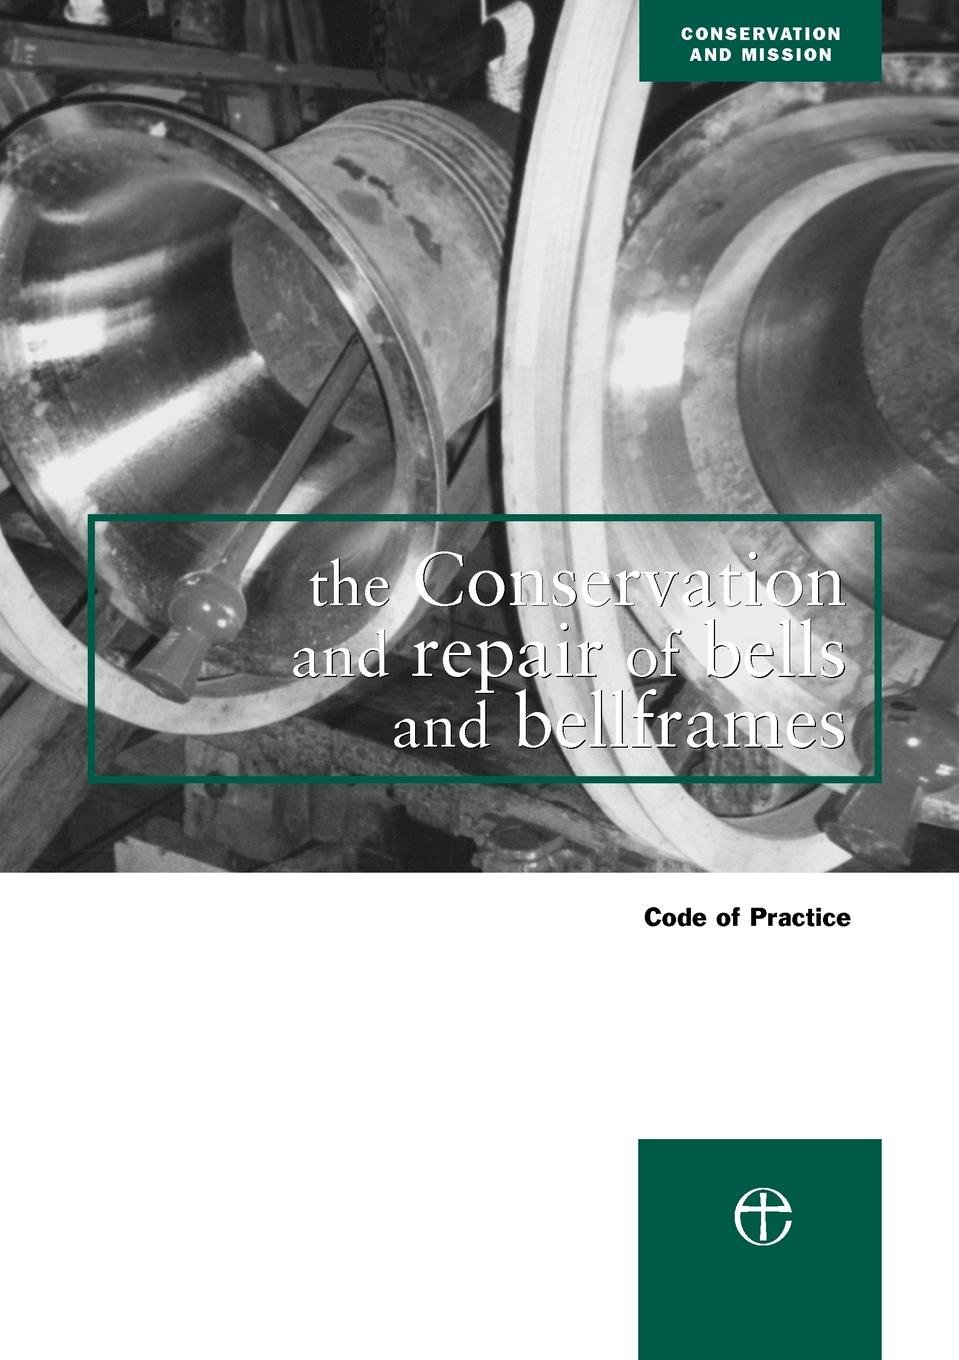 The Conservation and Repair of Bells and Bellframes: Code of practice (Conservation & mission)